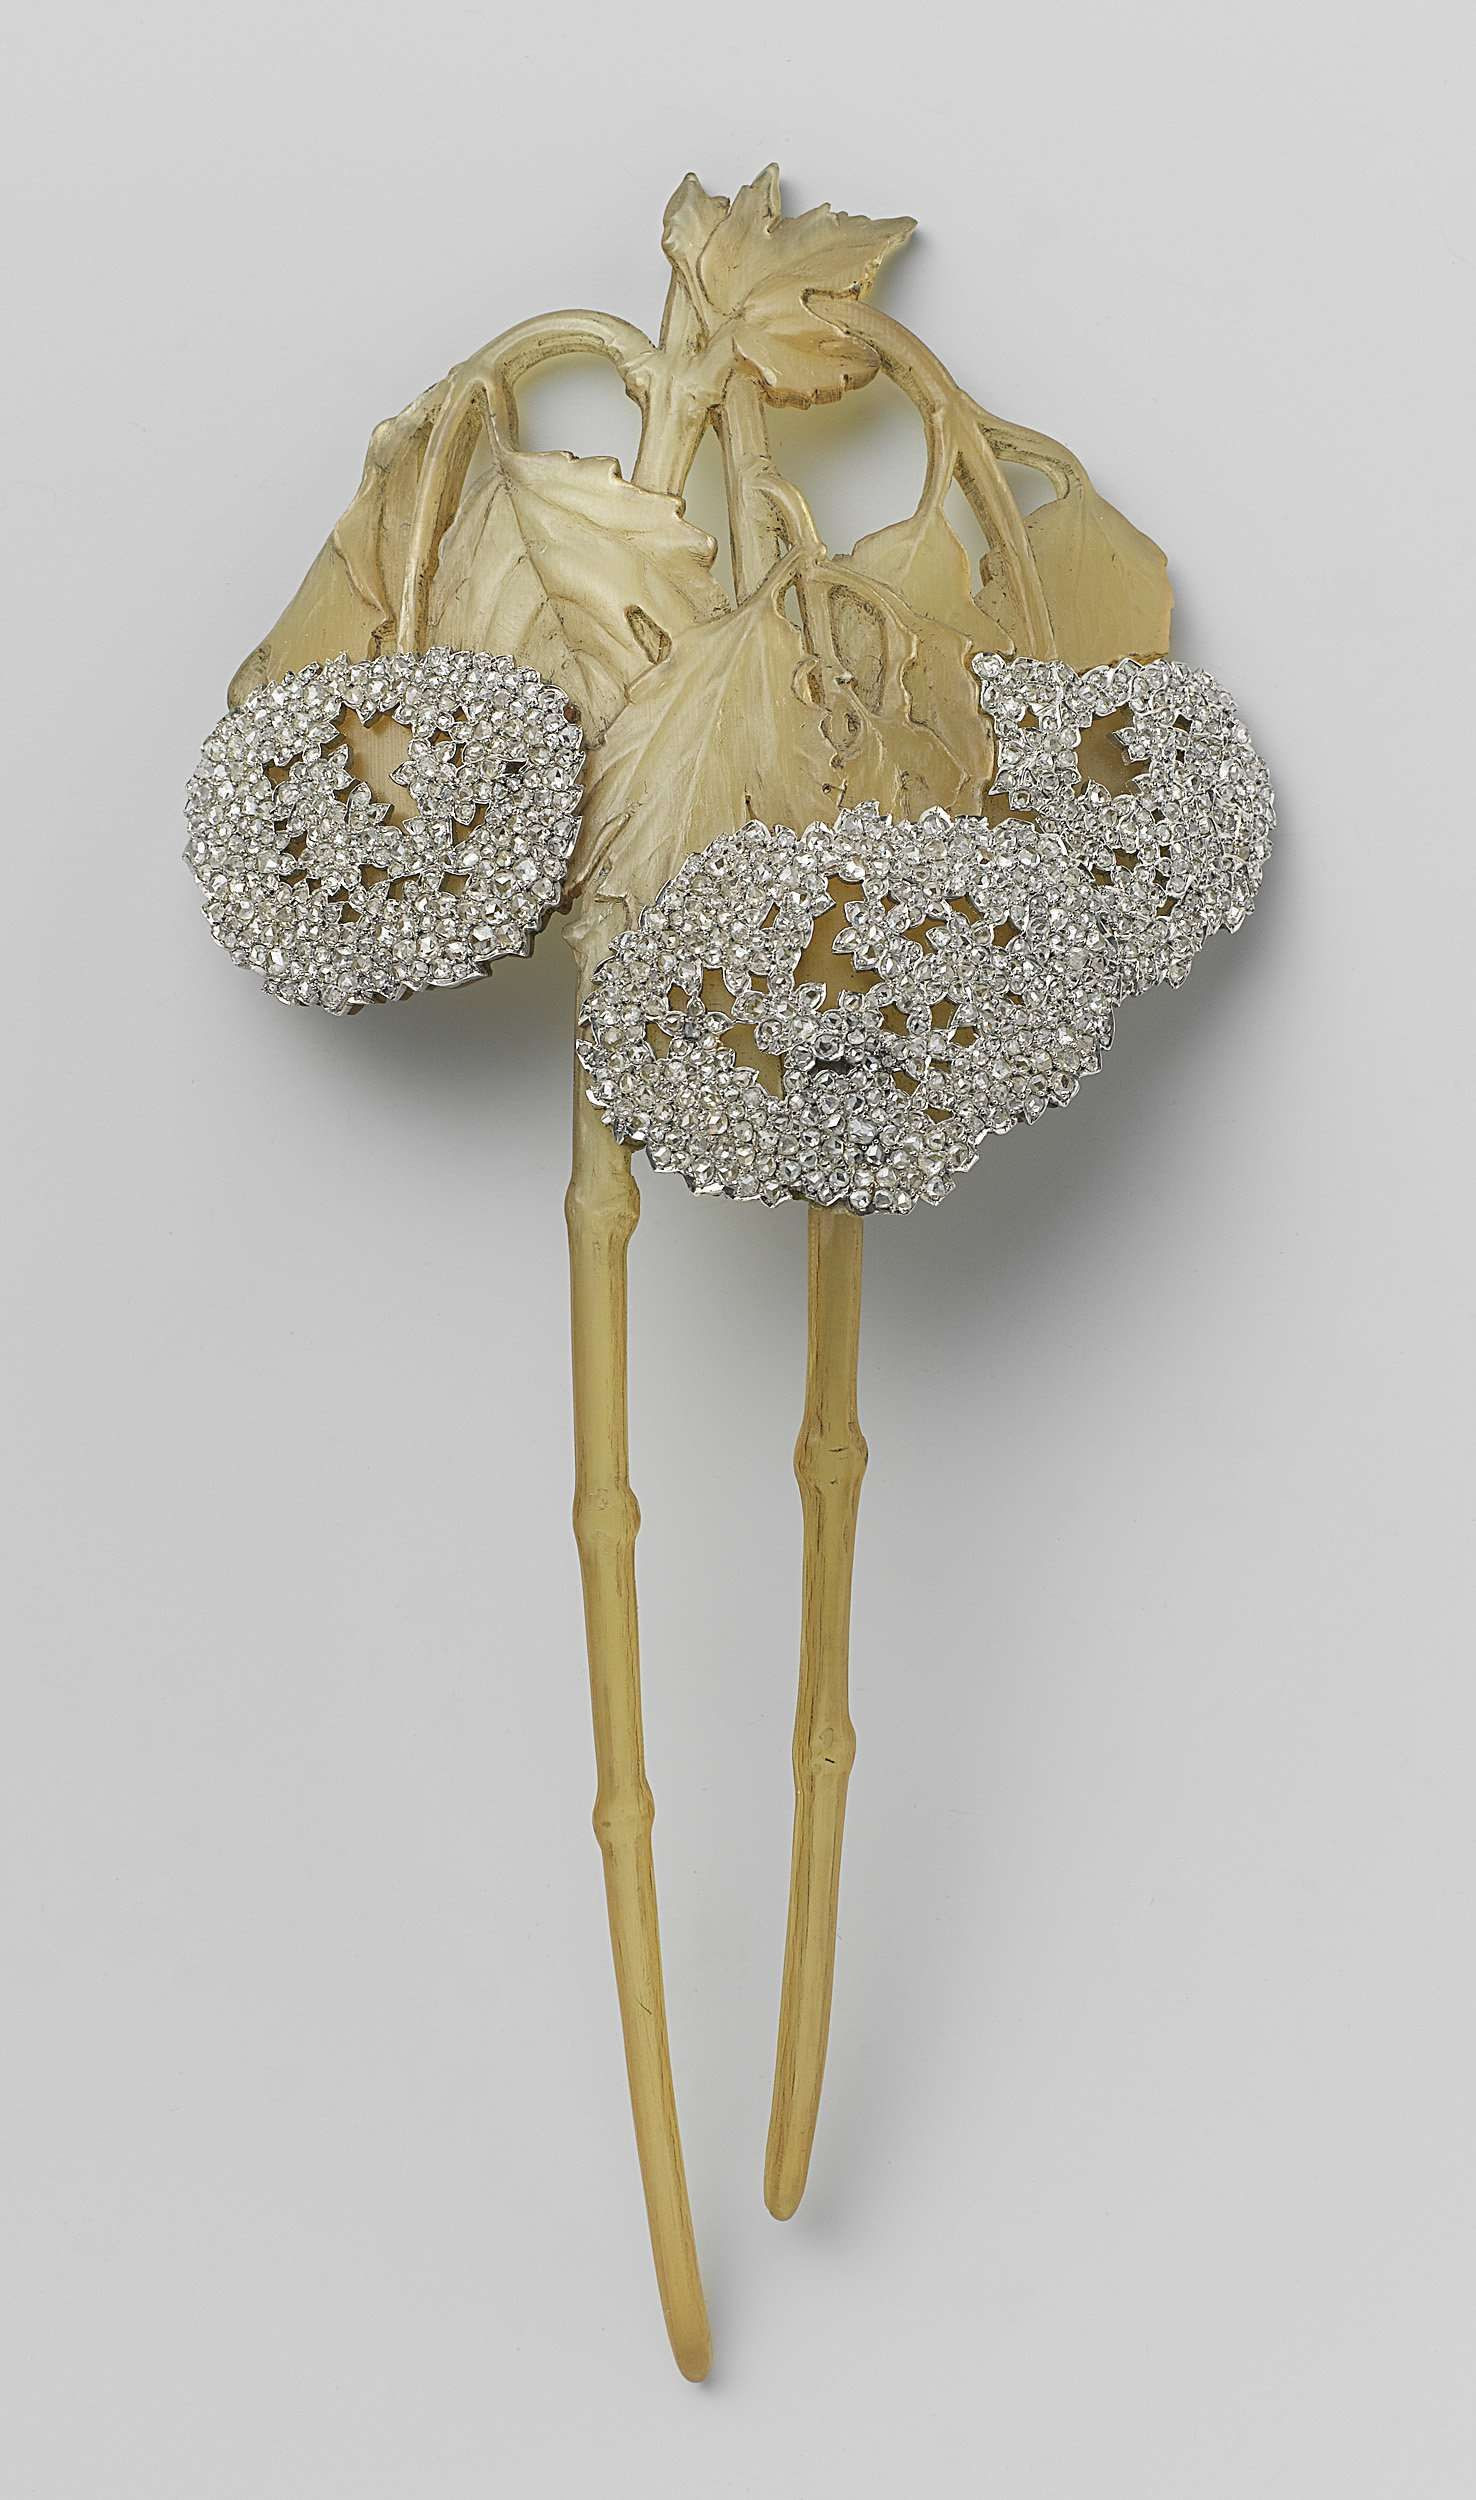 lalique dampierre bird vase of hair comb in the form of two branches of a shrub snowball rena inside hair comb in the form of two branches of a shrub snowball rena lalique c 1902 c 1903 hair jewel in the shape of two viburnum branches